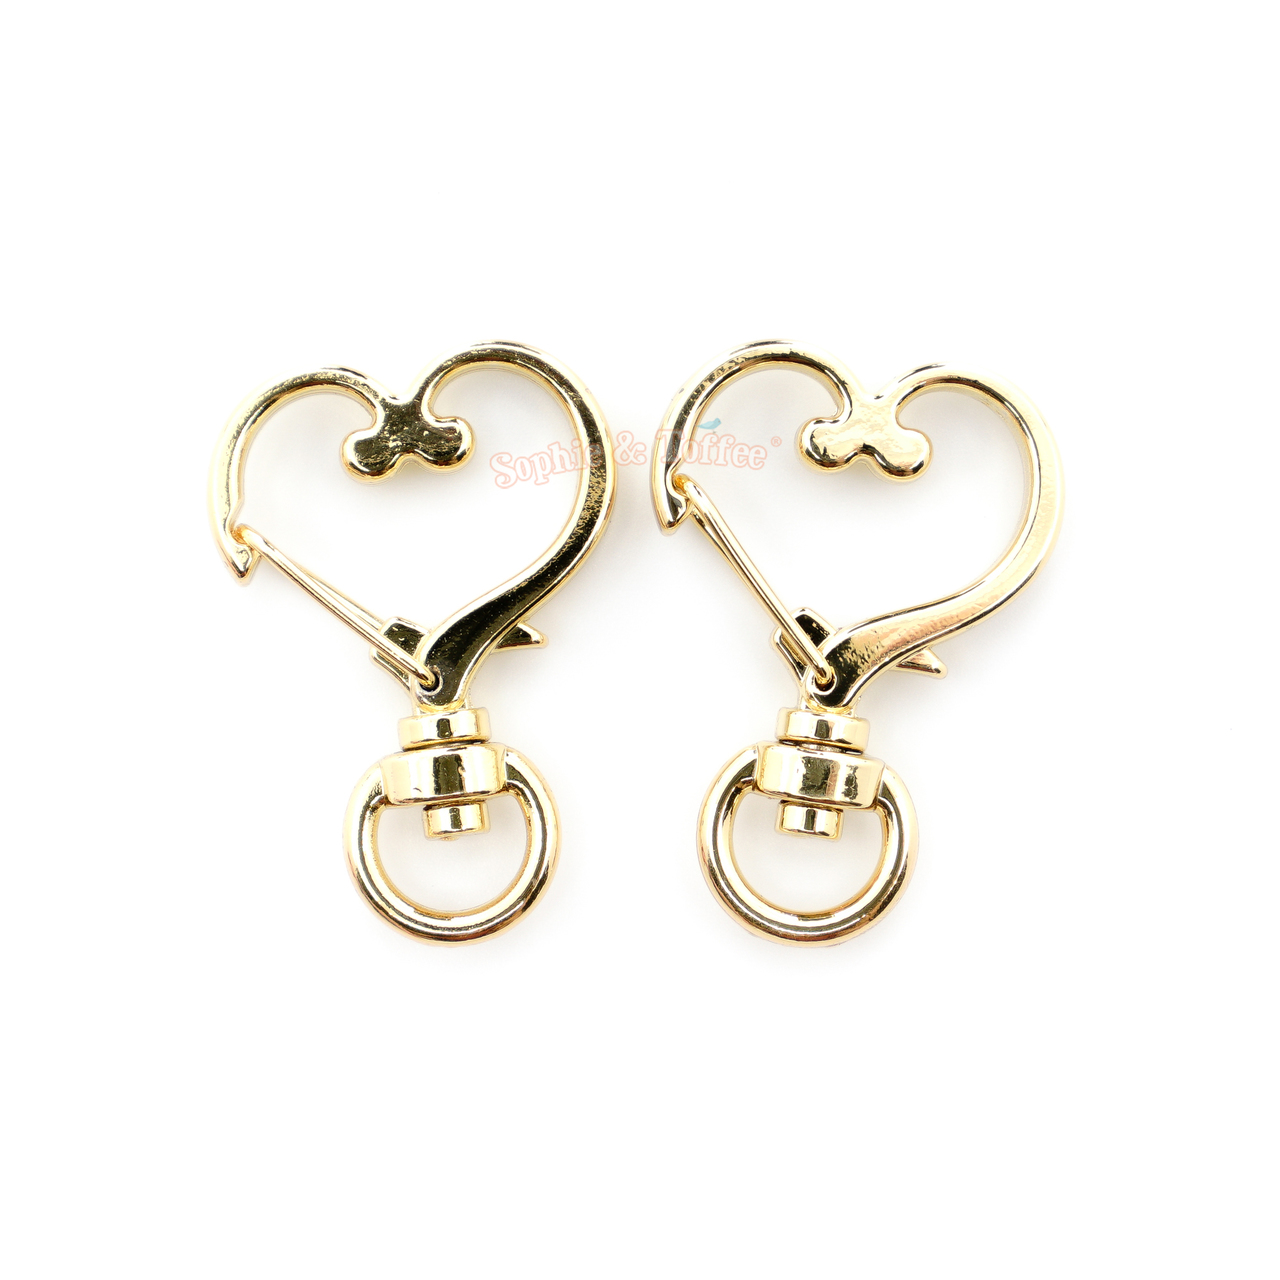 Heart Snap Clip with Swivel Ring (3 pieces)